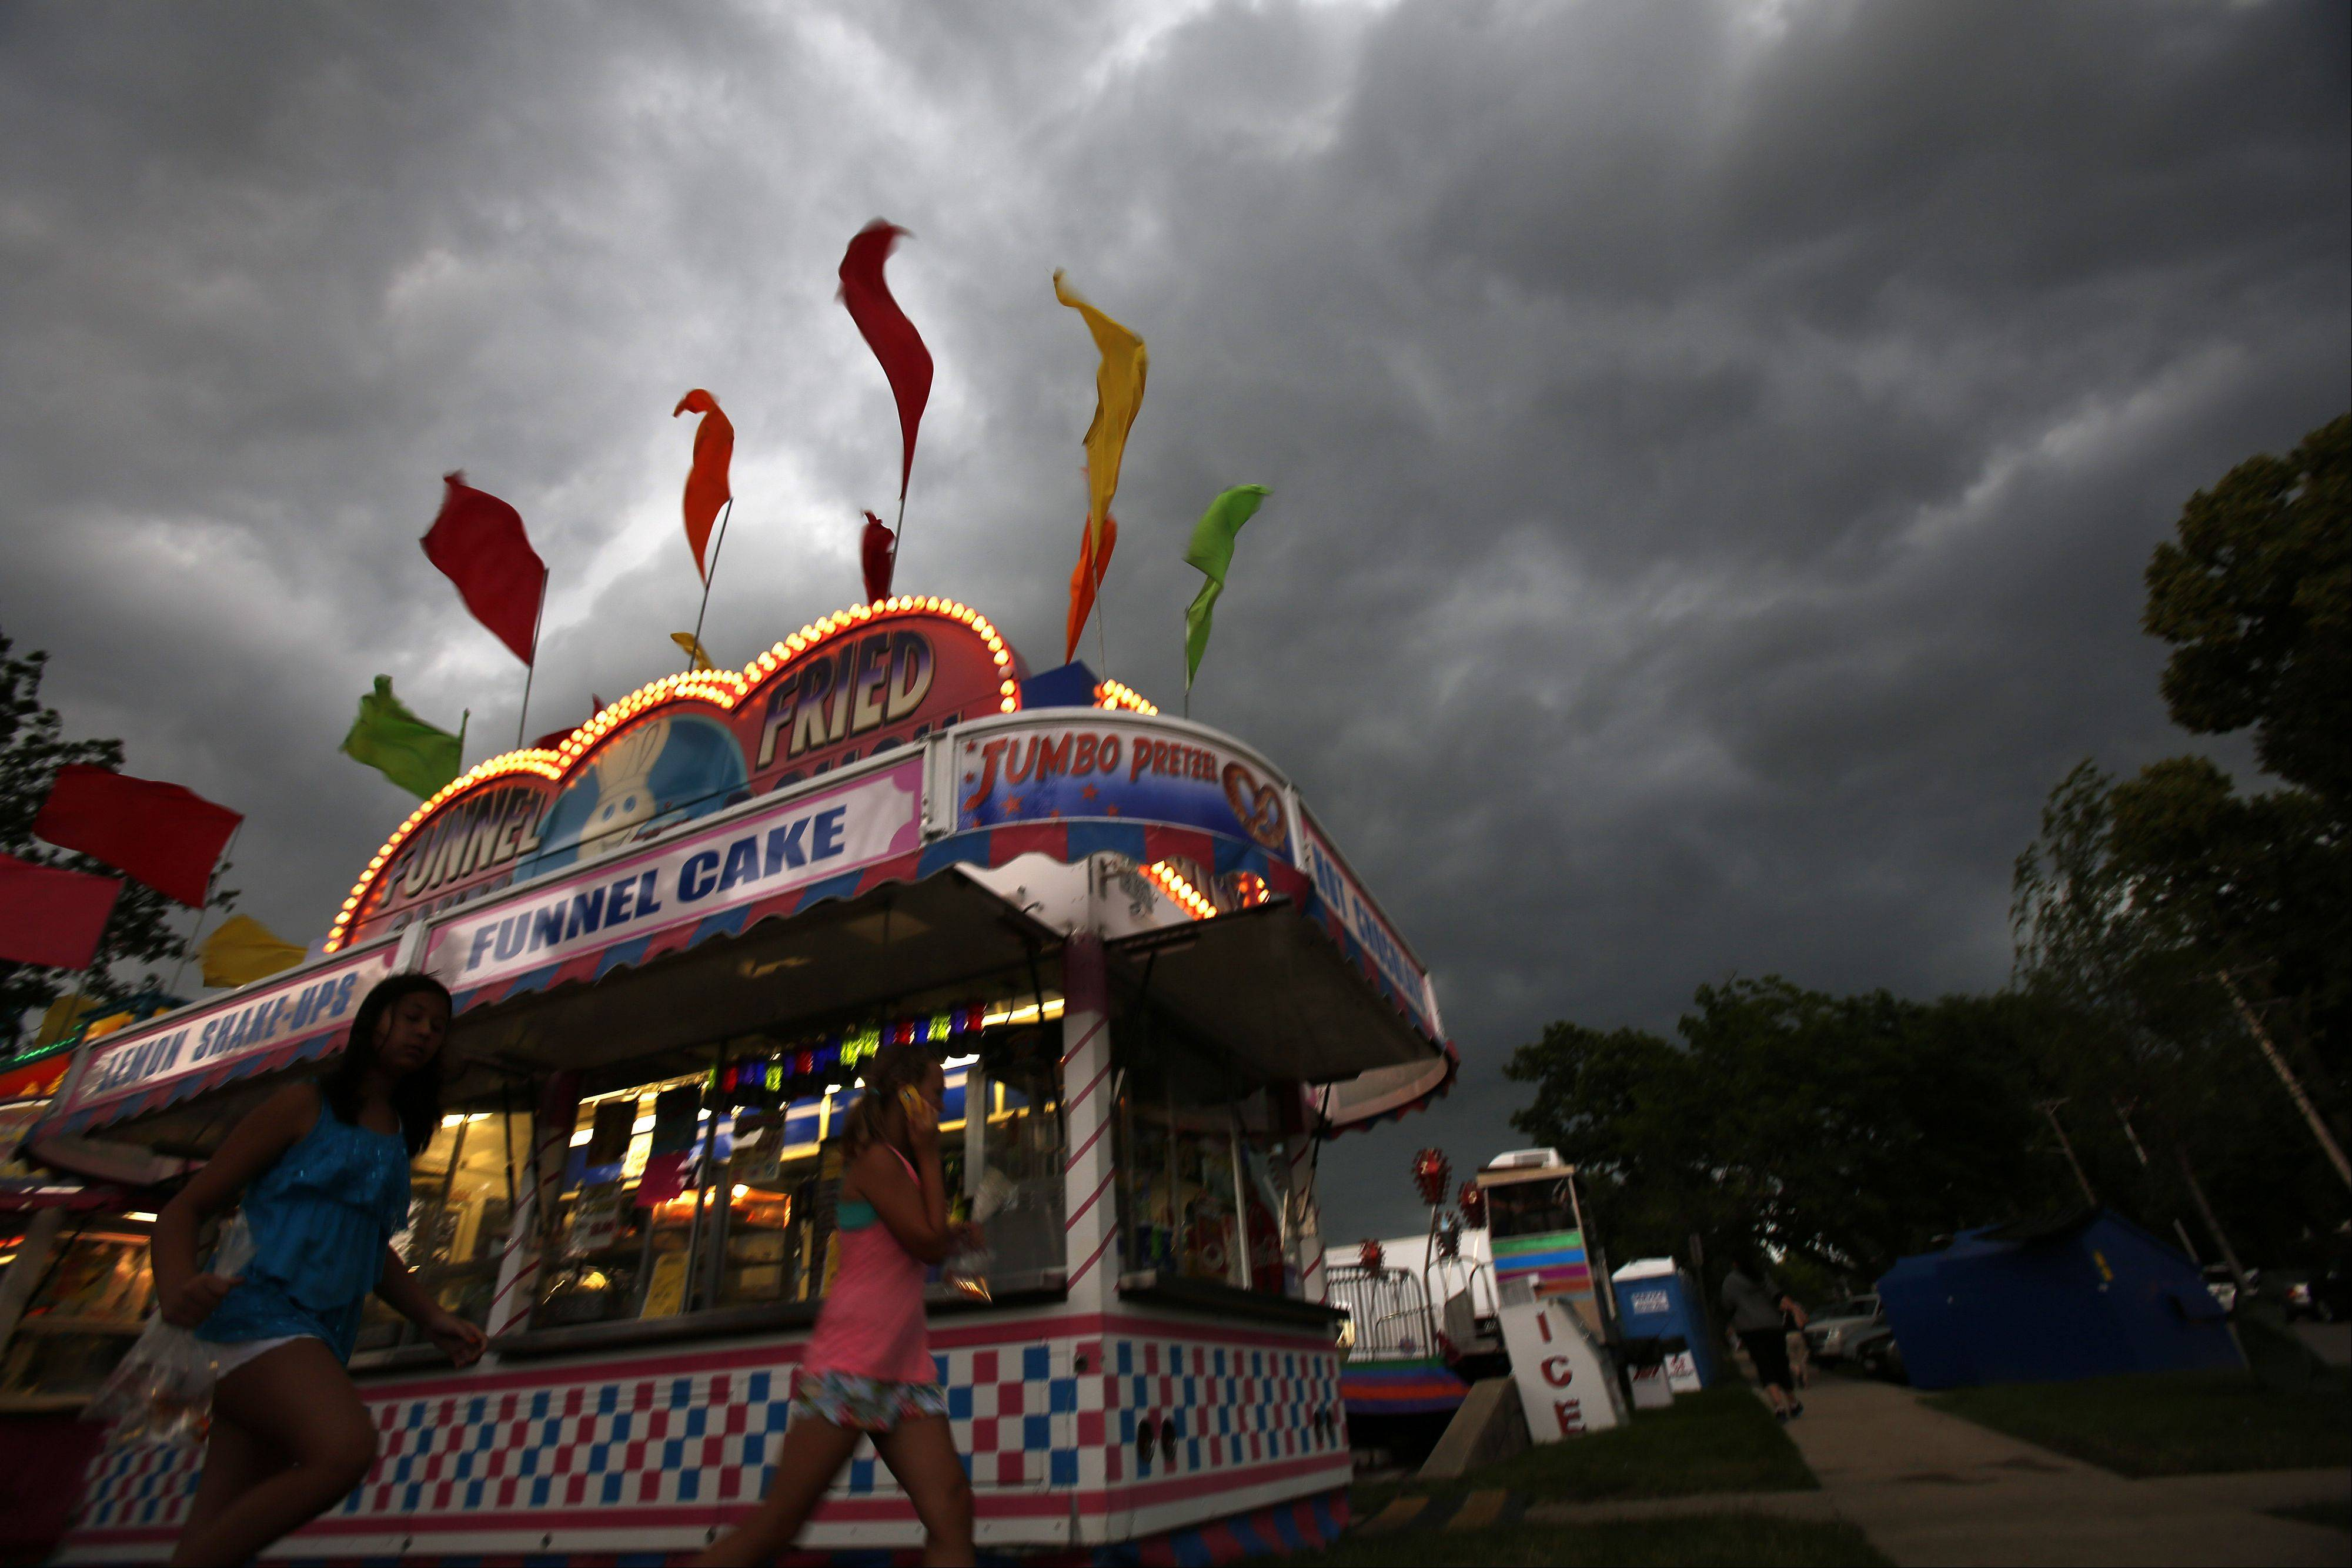 Storms roll in as Swedish Days was shut down temporarily in Geneva Friday.